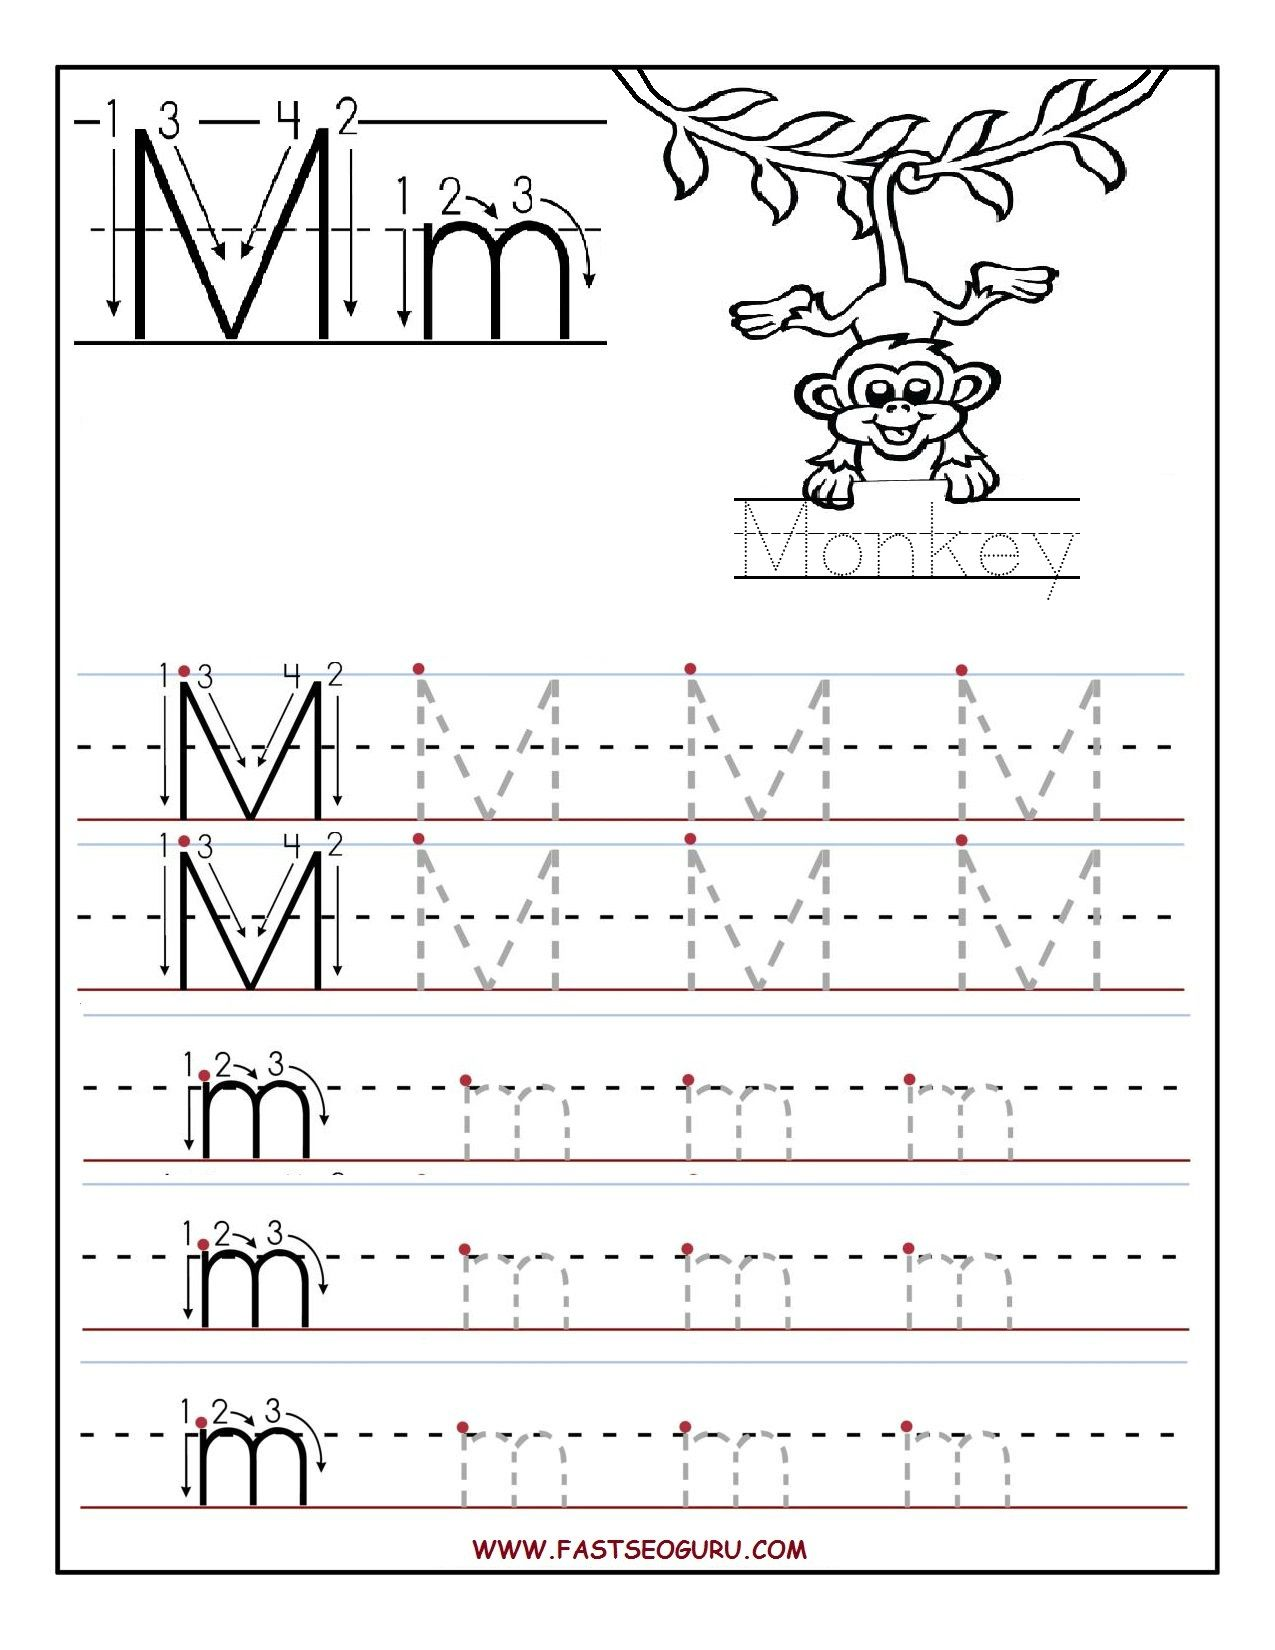 Printable letter M tracing worksheets for preschool – Letter Tracing Worksheets for Kindergarten